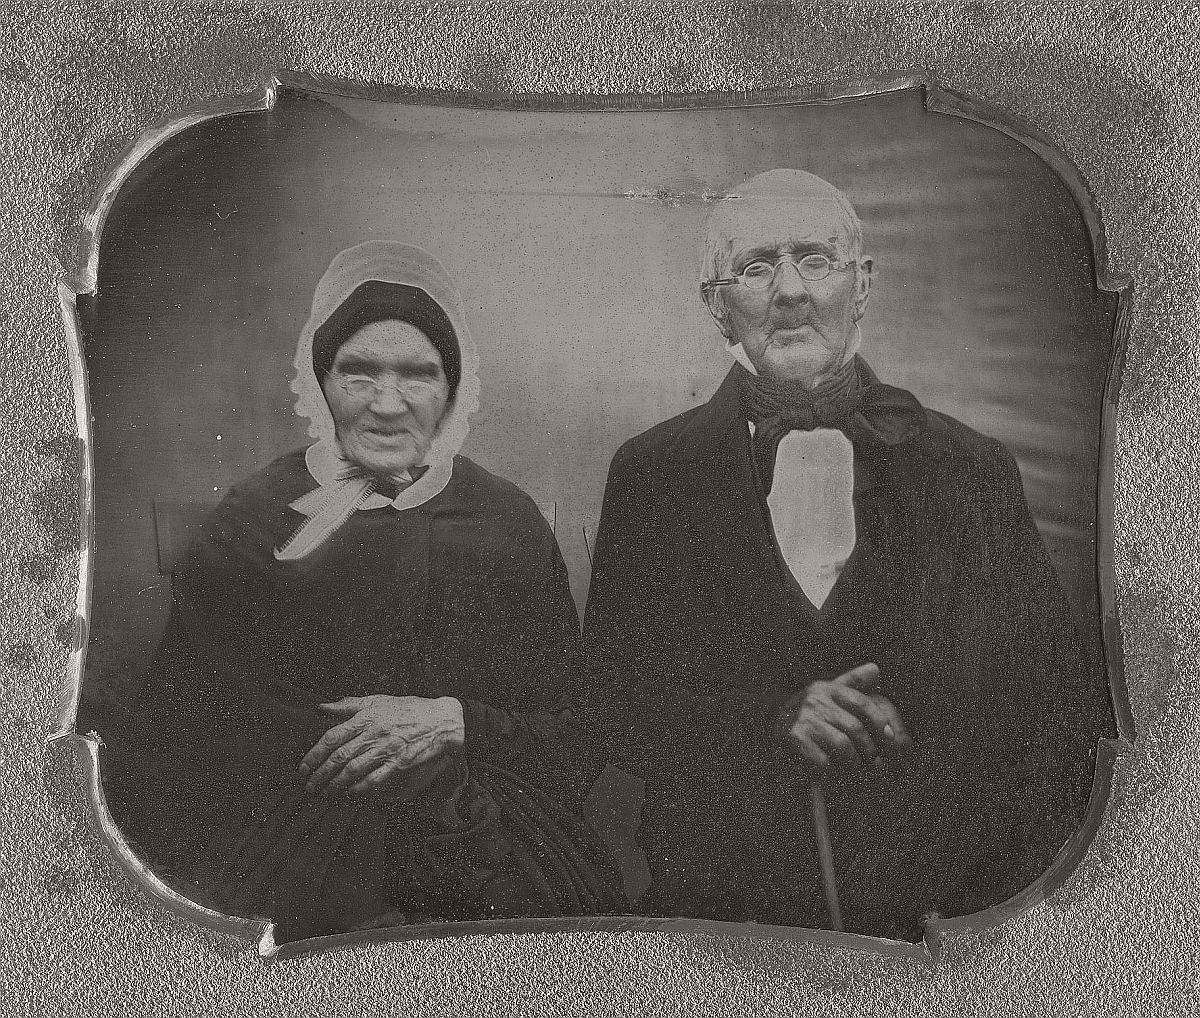 daguerreotype-portrait-people-born-in-the-late-18th-xviii-century-1700s-vintage-37